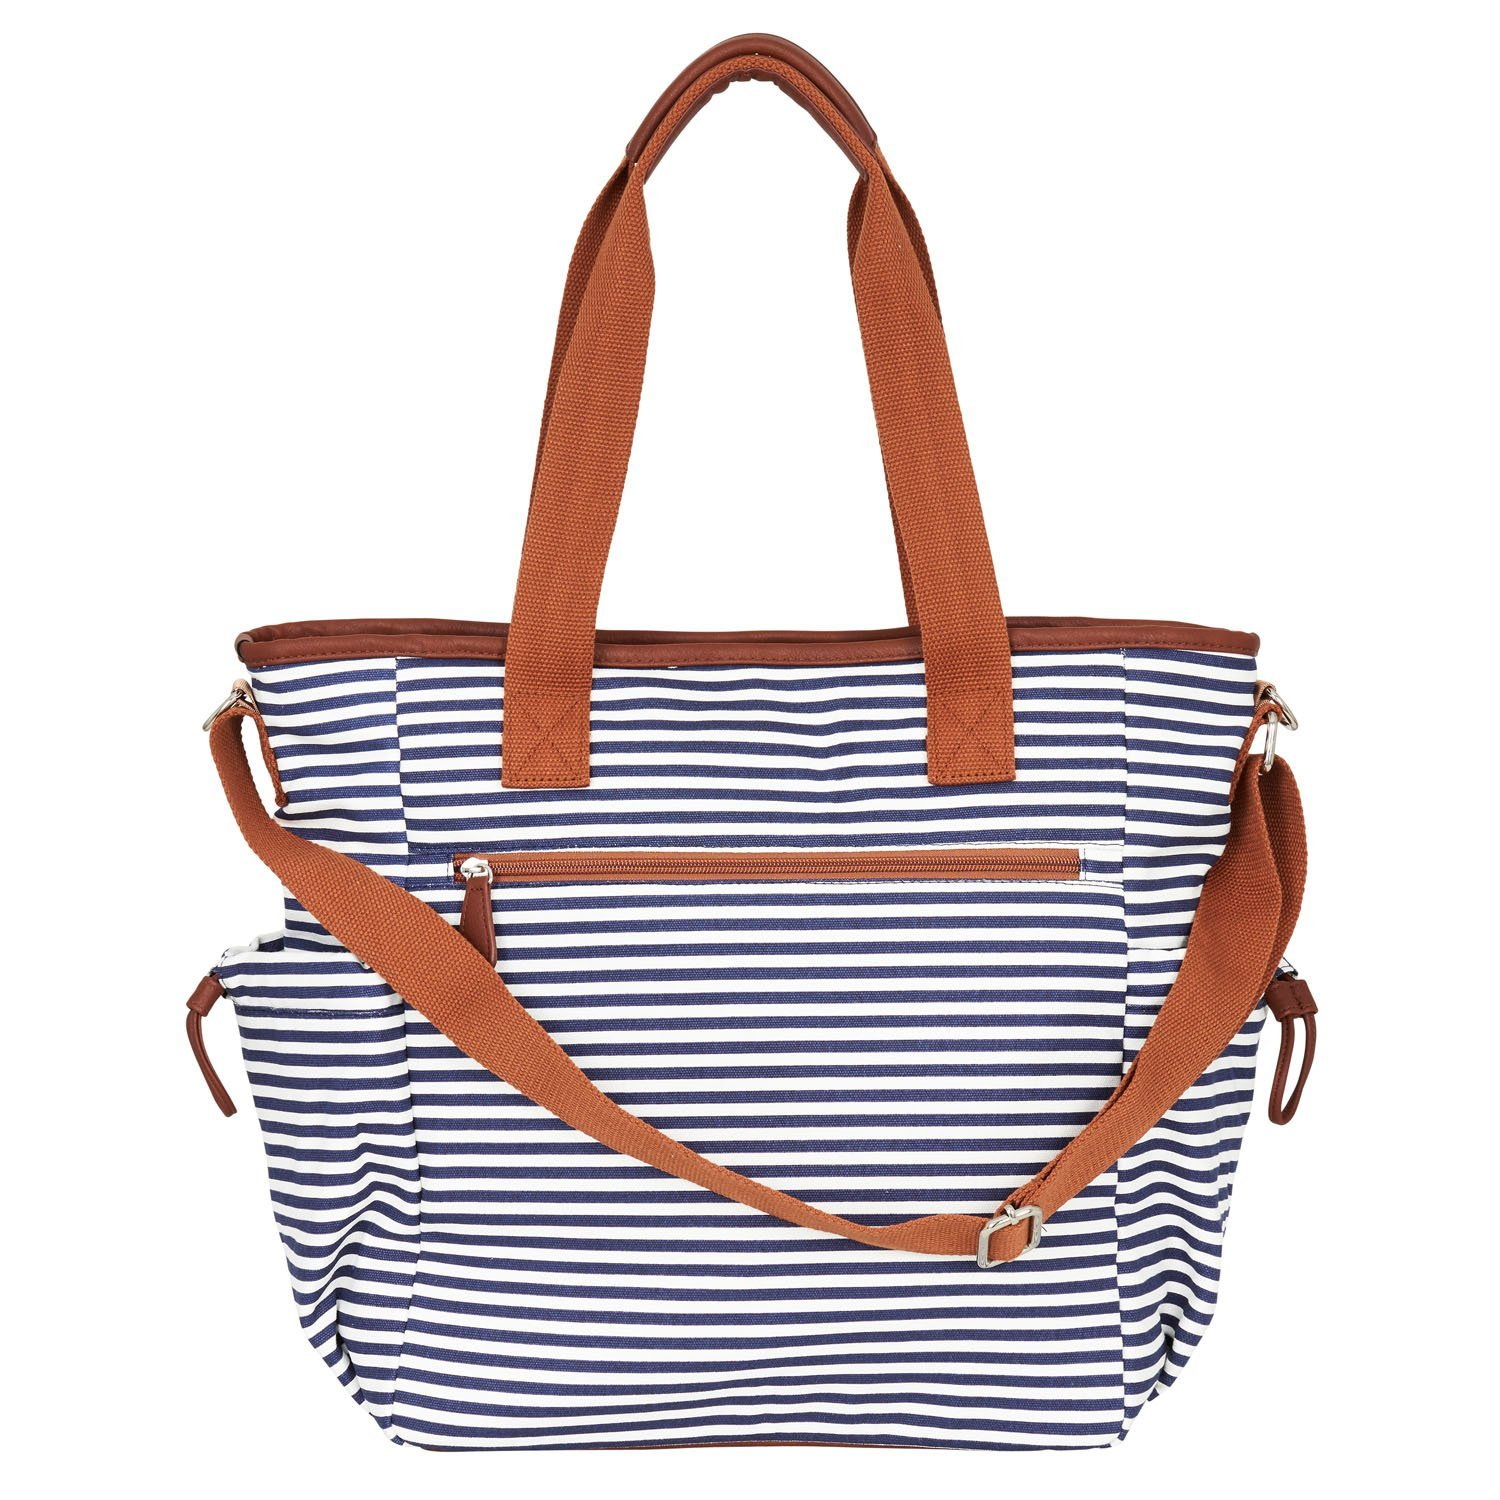 ec13c0501ac50 Details about Diaper Bag by Hip Cub - Weekender Tote - Designer Canvas W/  Cute Baby Change Pad